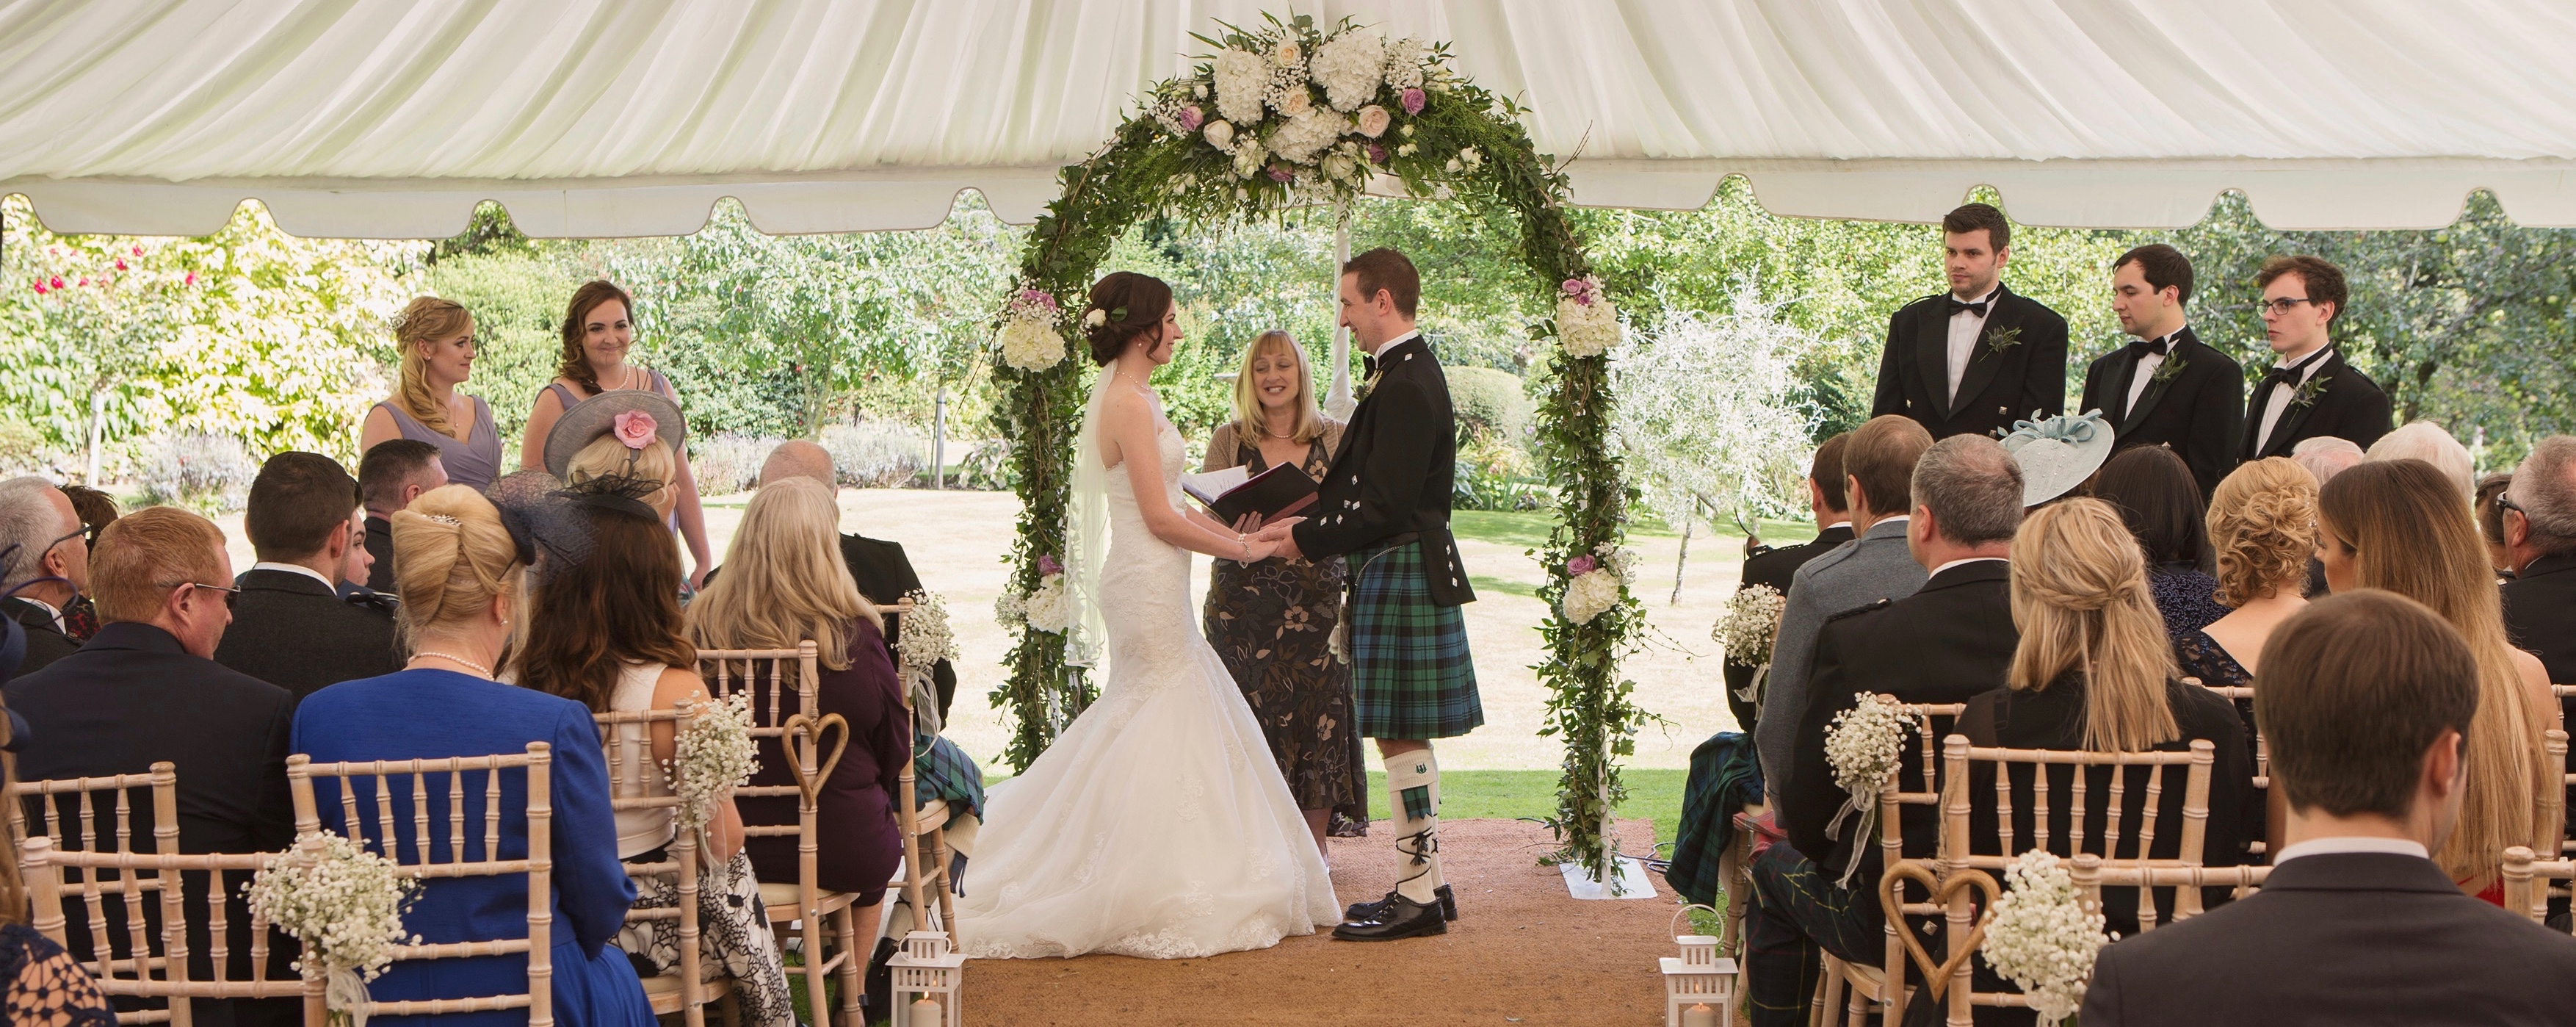 Garden Weddings Hillhouse